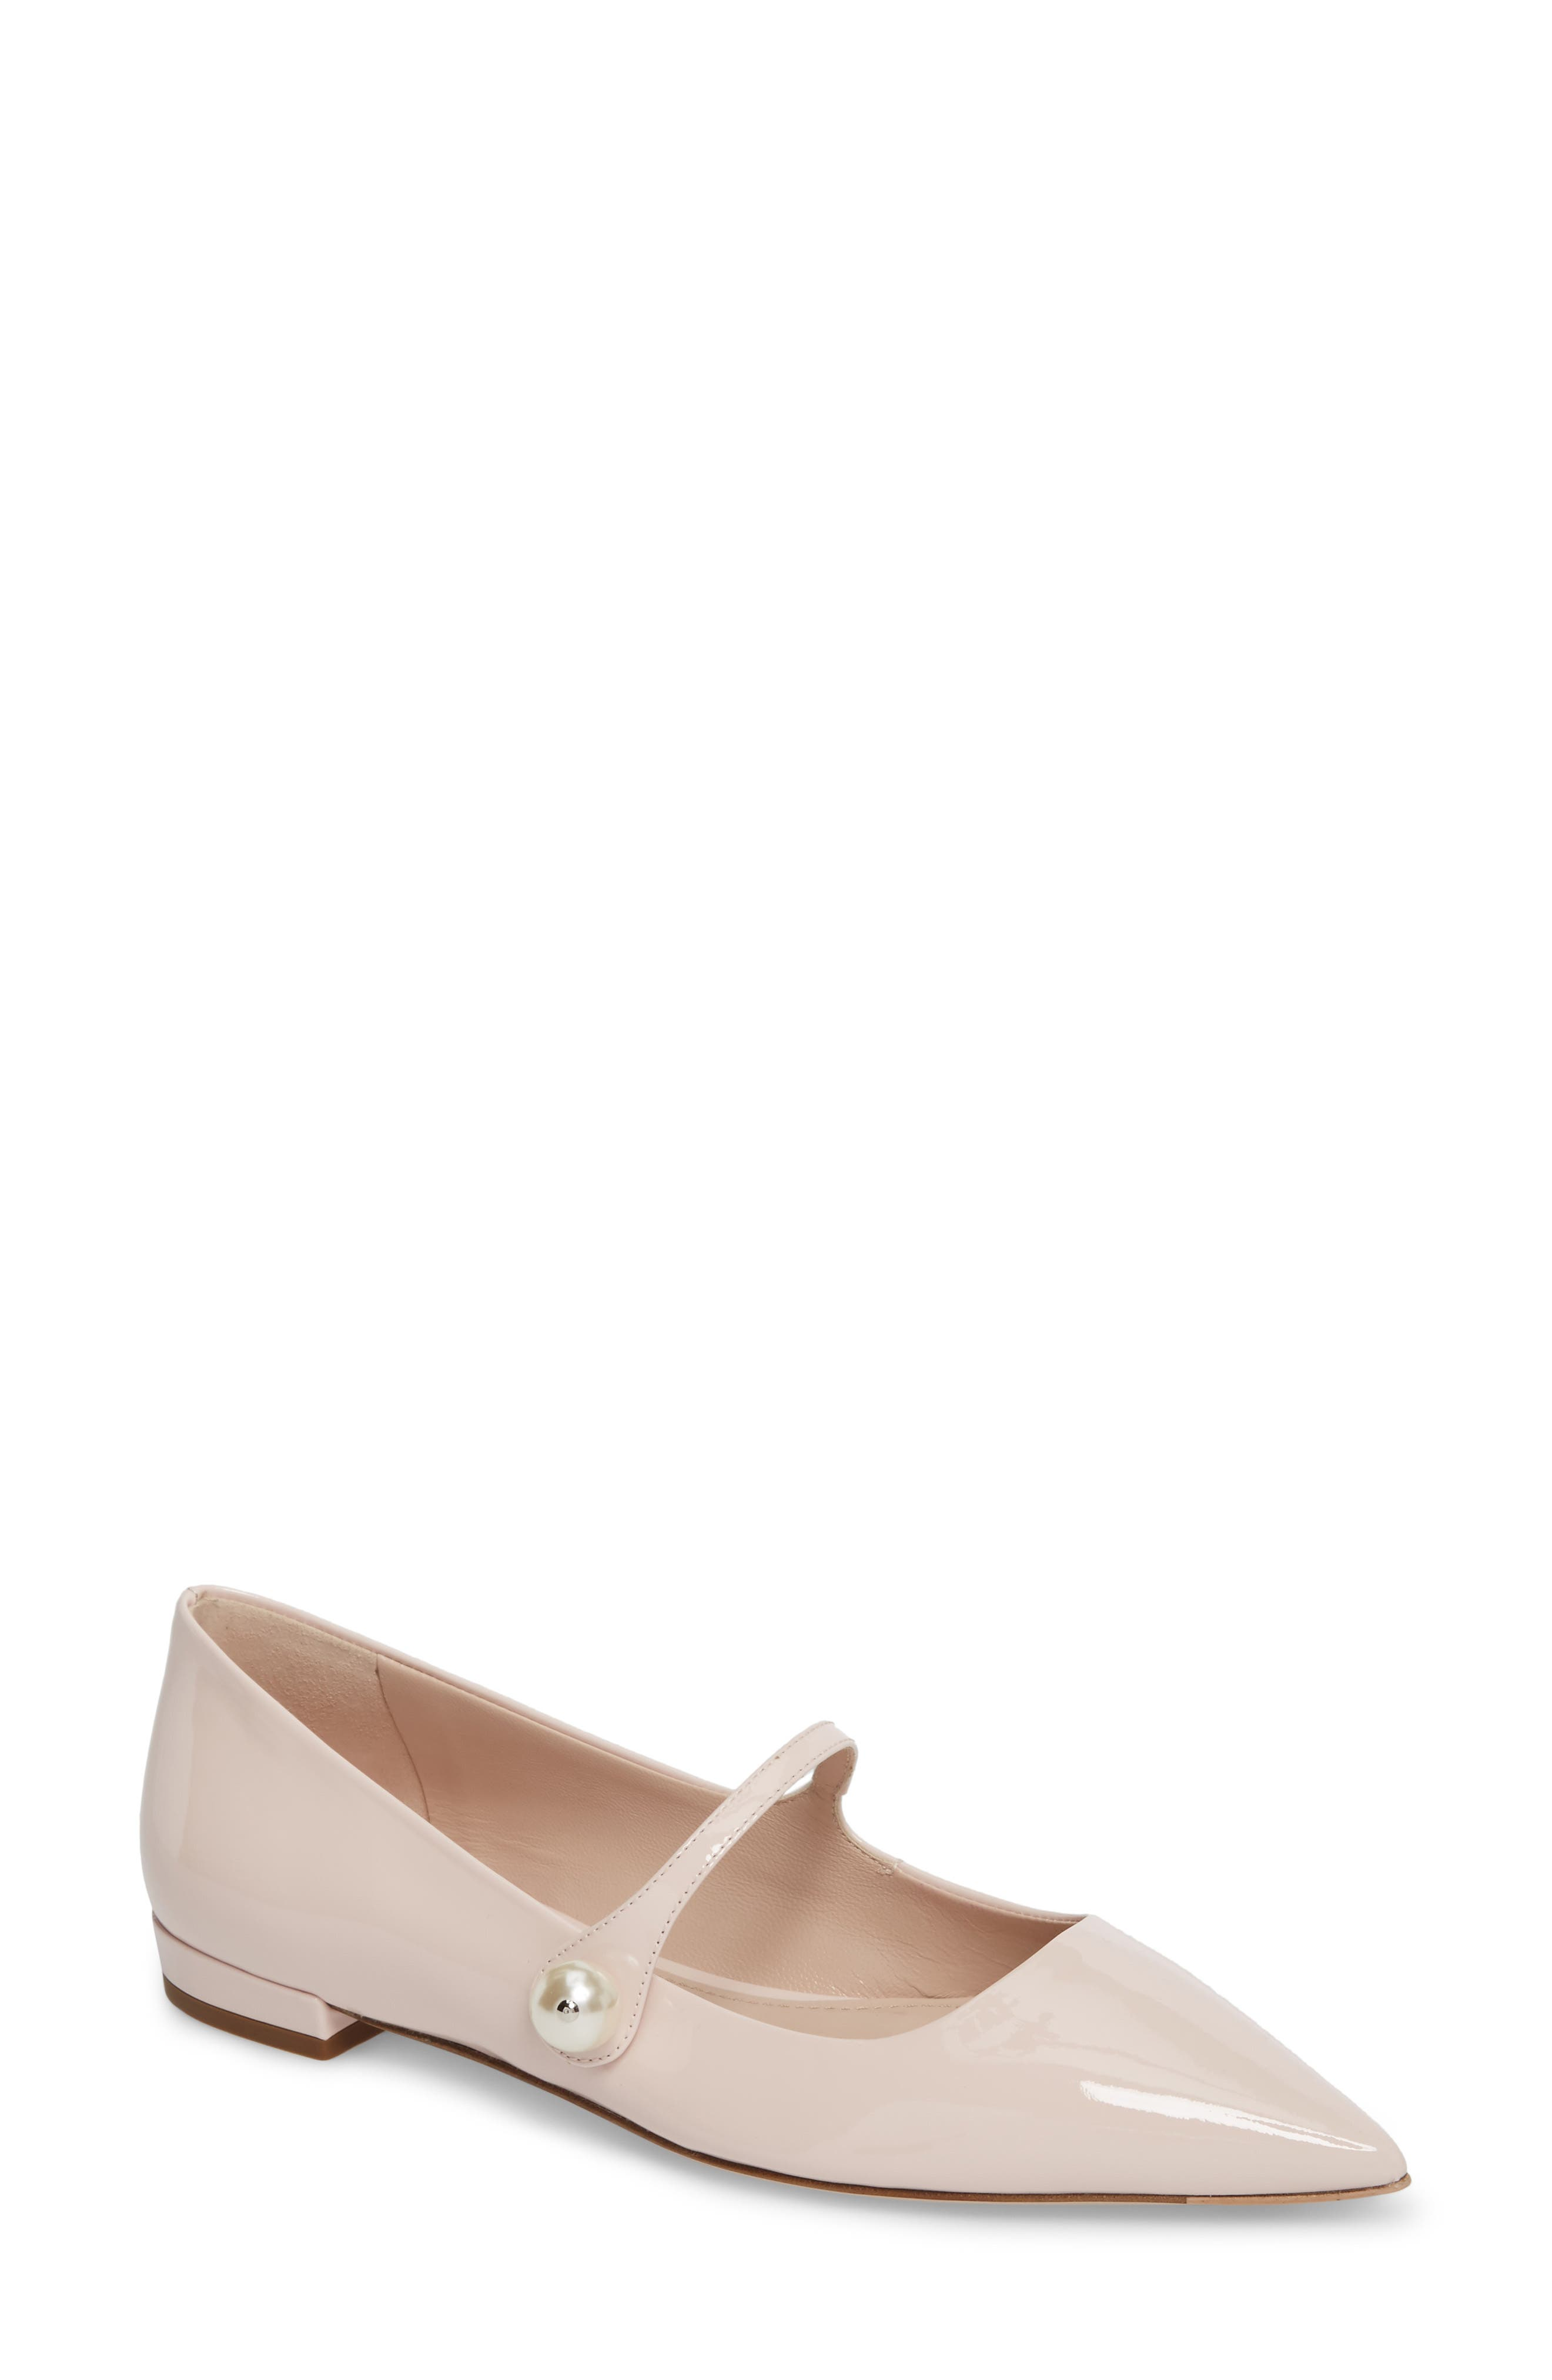 Pearl Mary Jane Flat,                         Main,                         color, LIGHT PINK